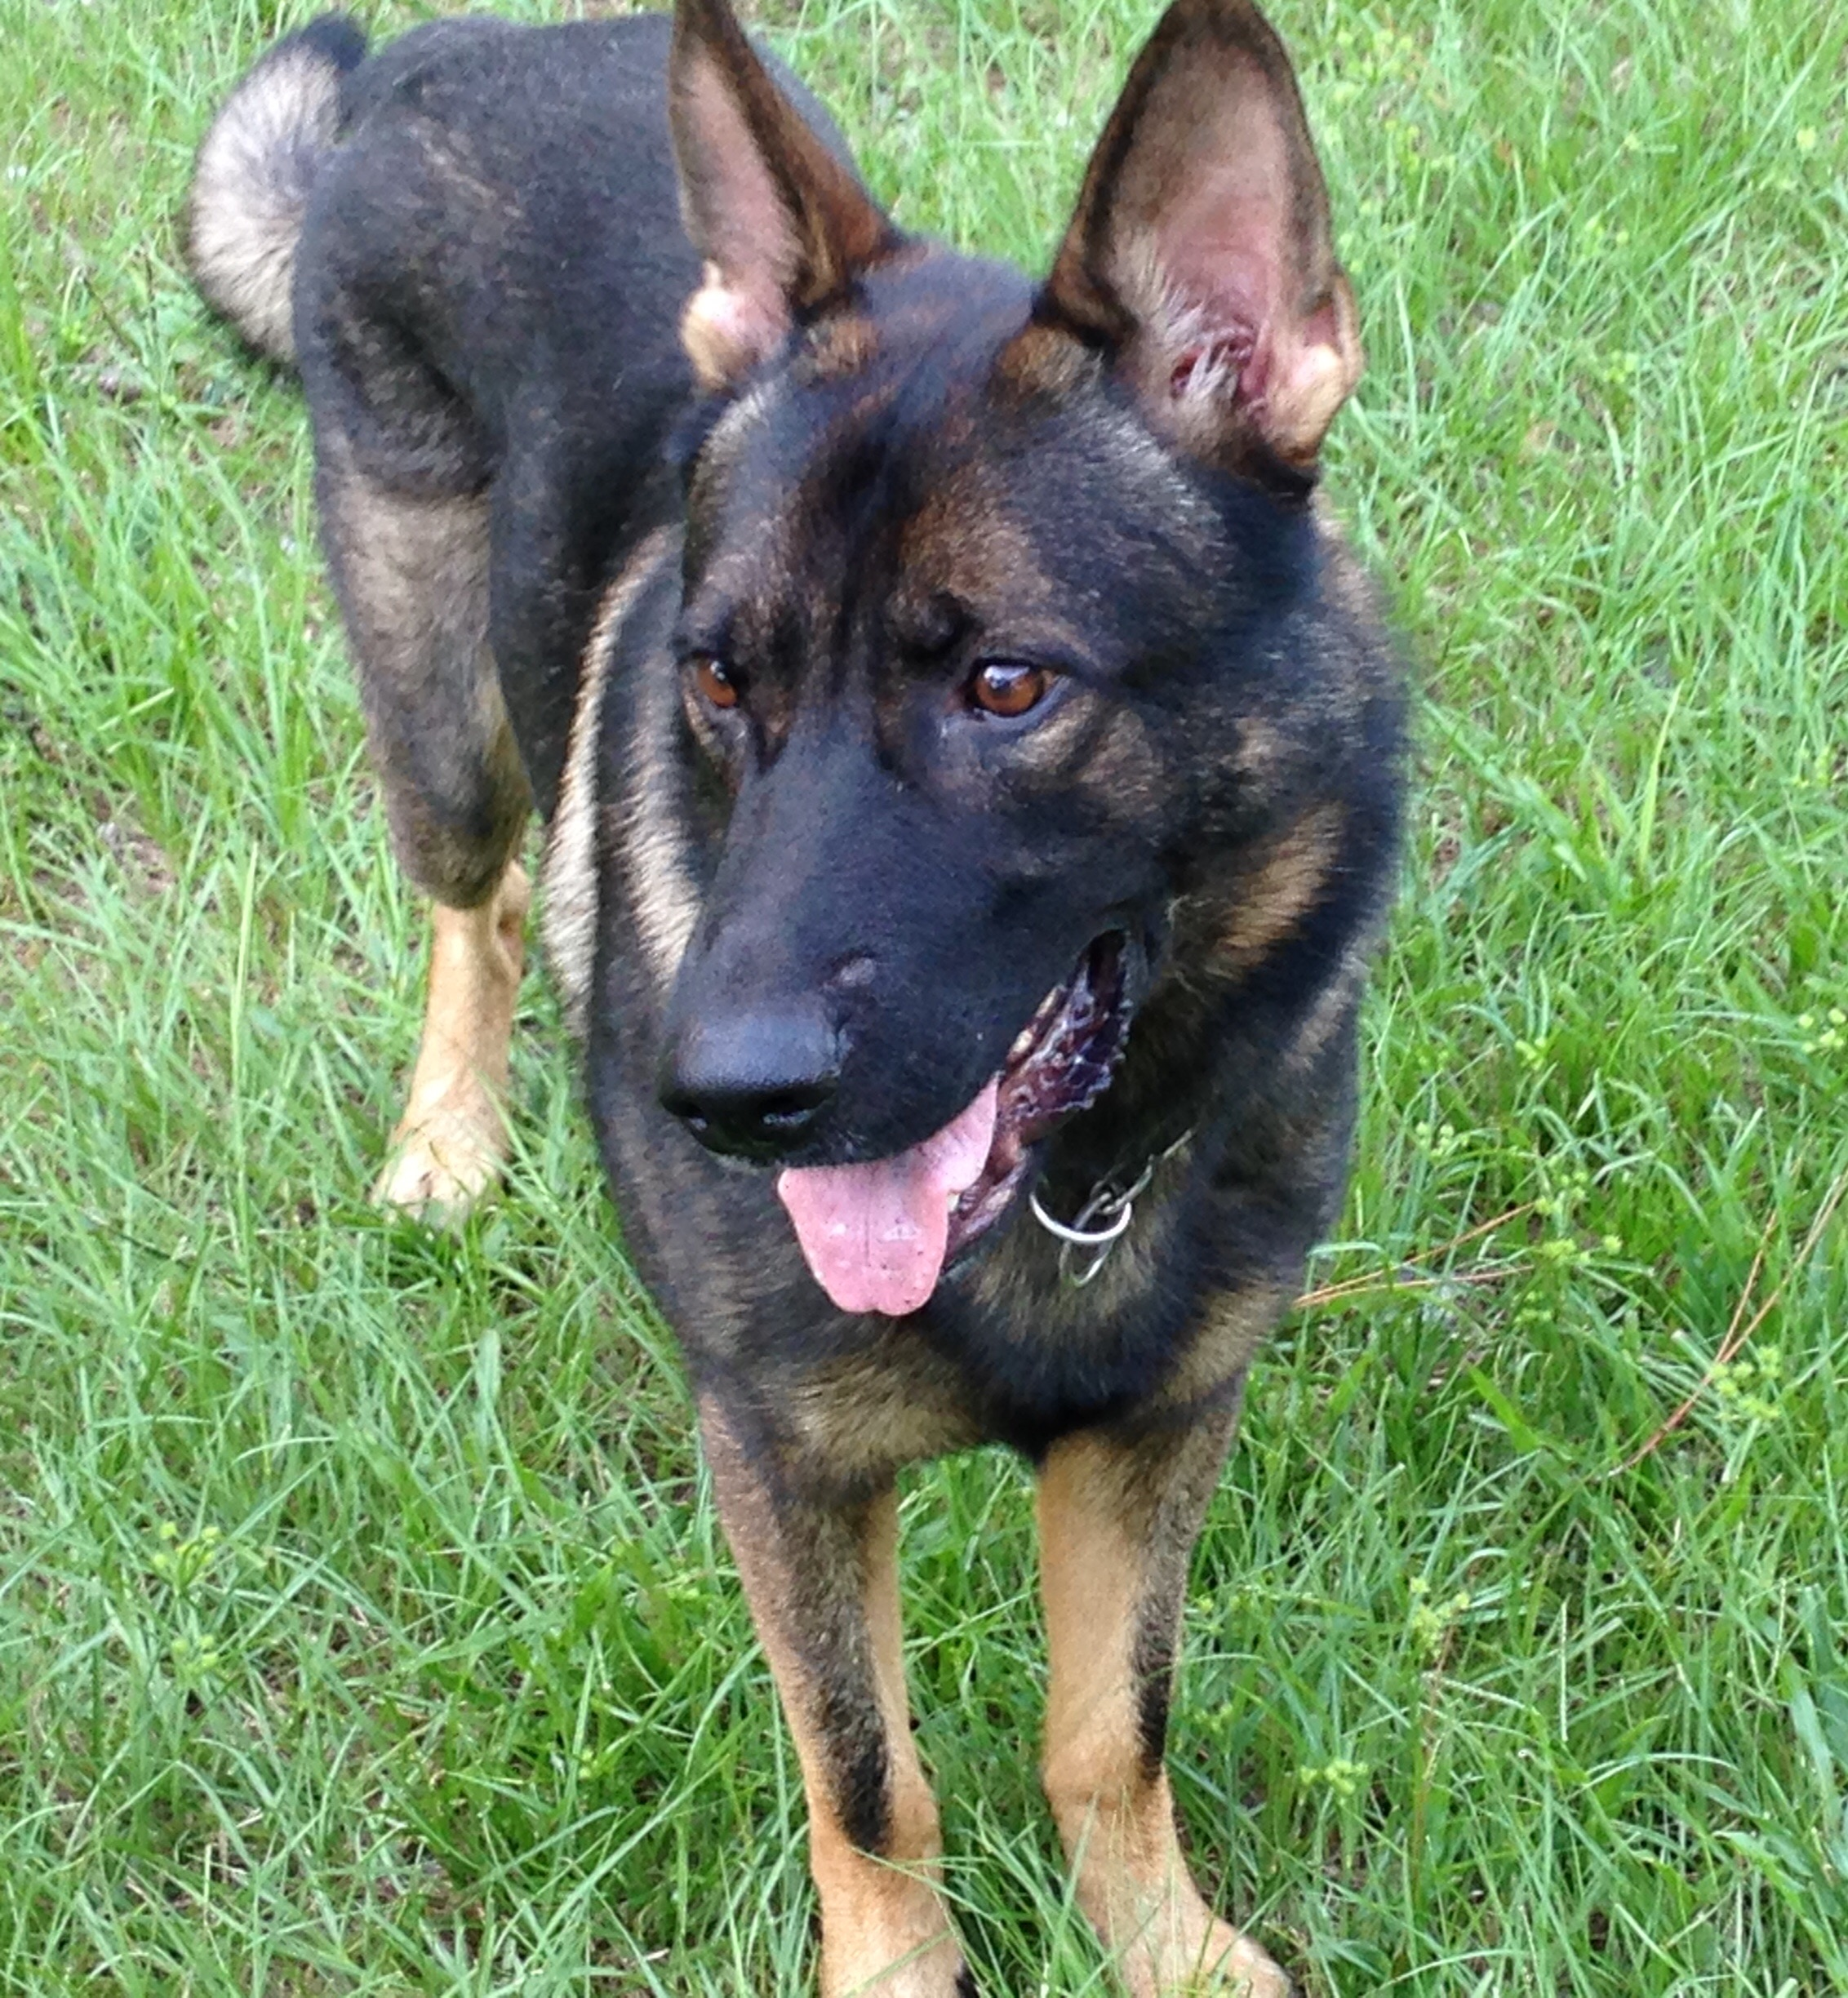 Gonso breed to Artis to have German Shepherd Puppies